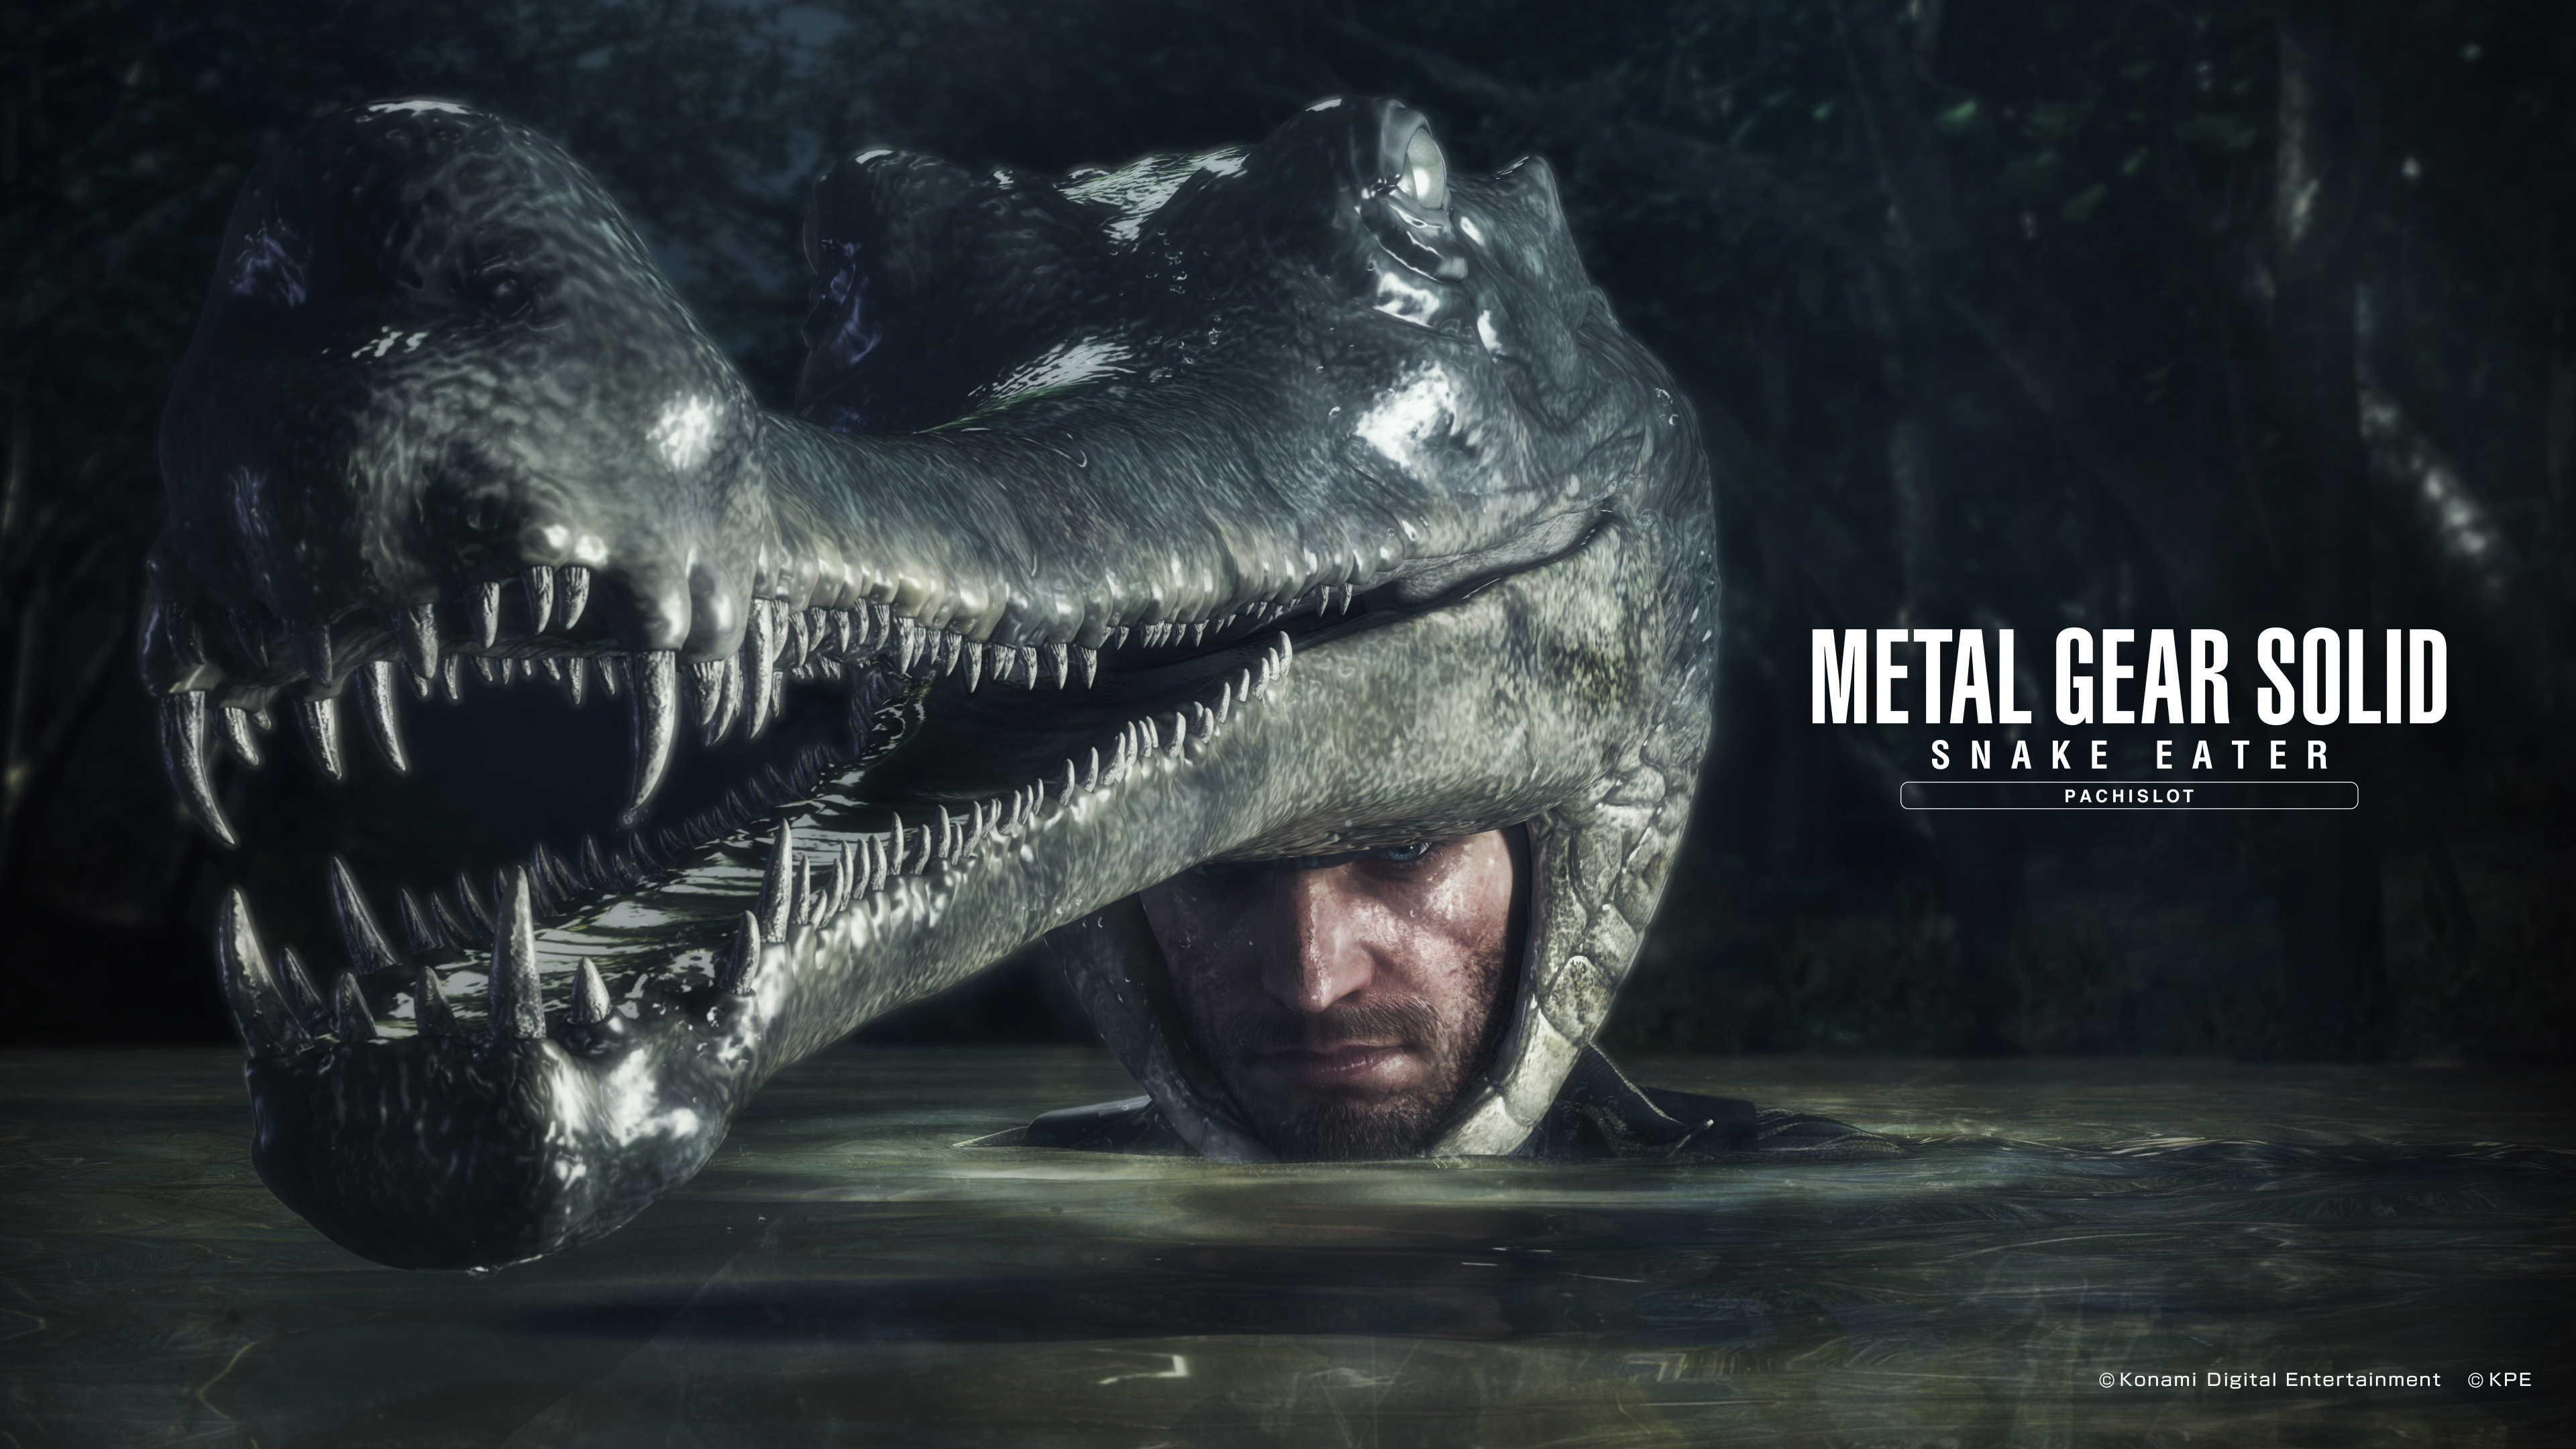 official metal gear solid snake eater pachislot wallpapers released